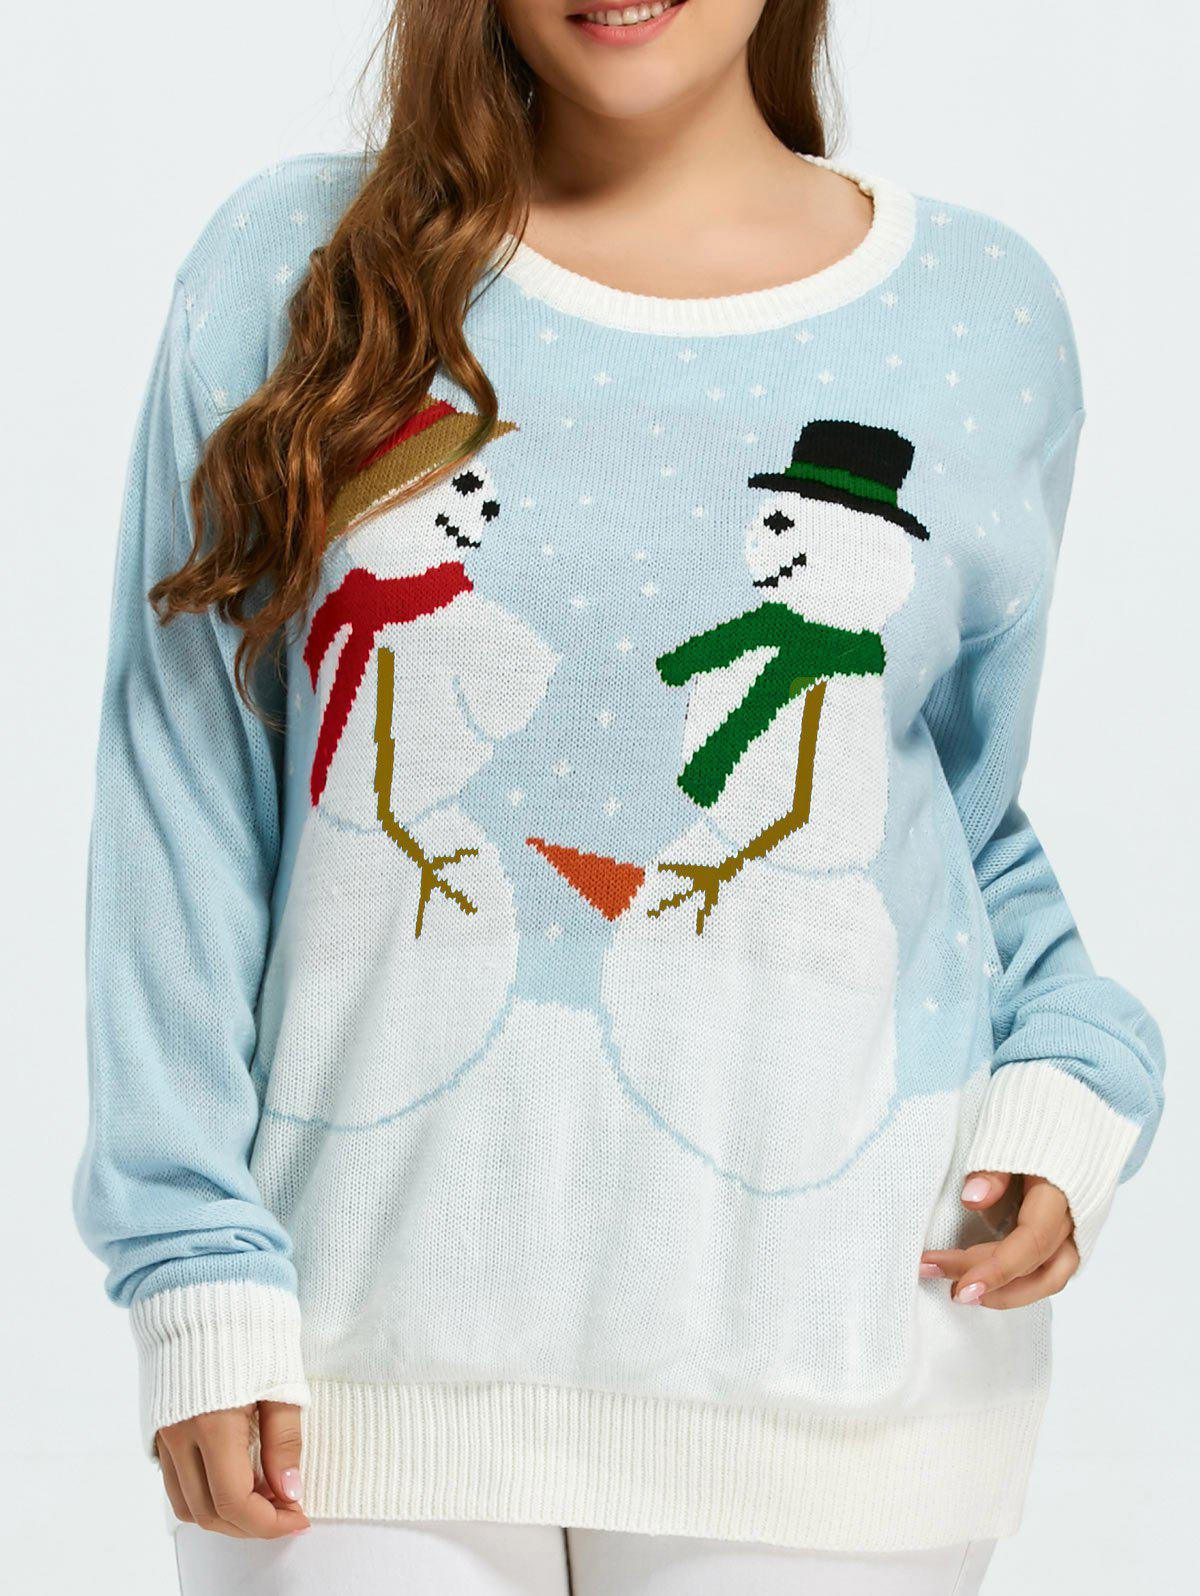 646bbfc83f9 2019 Funny Snowman Pattern Christmas Cute Plus Size Sweater ...